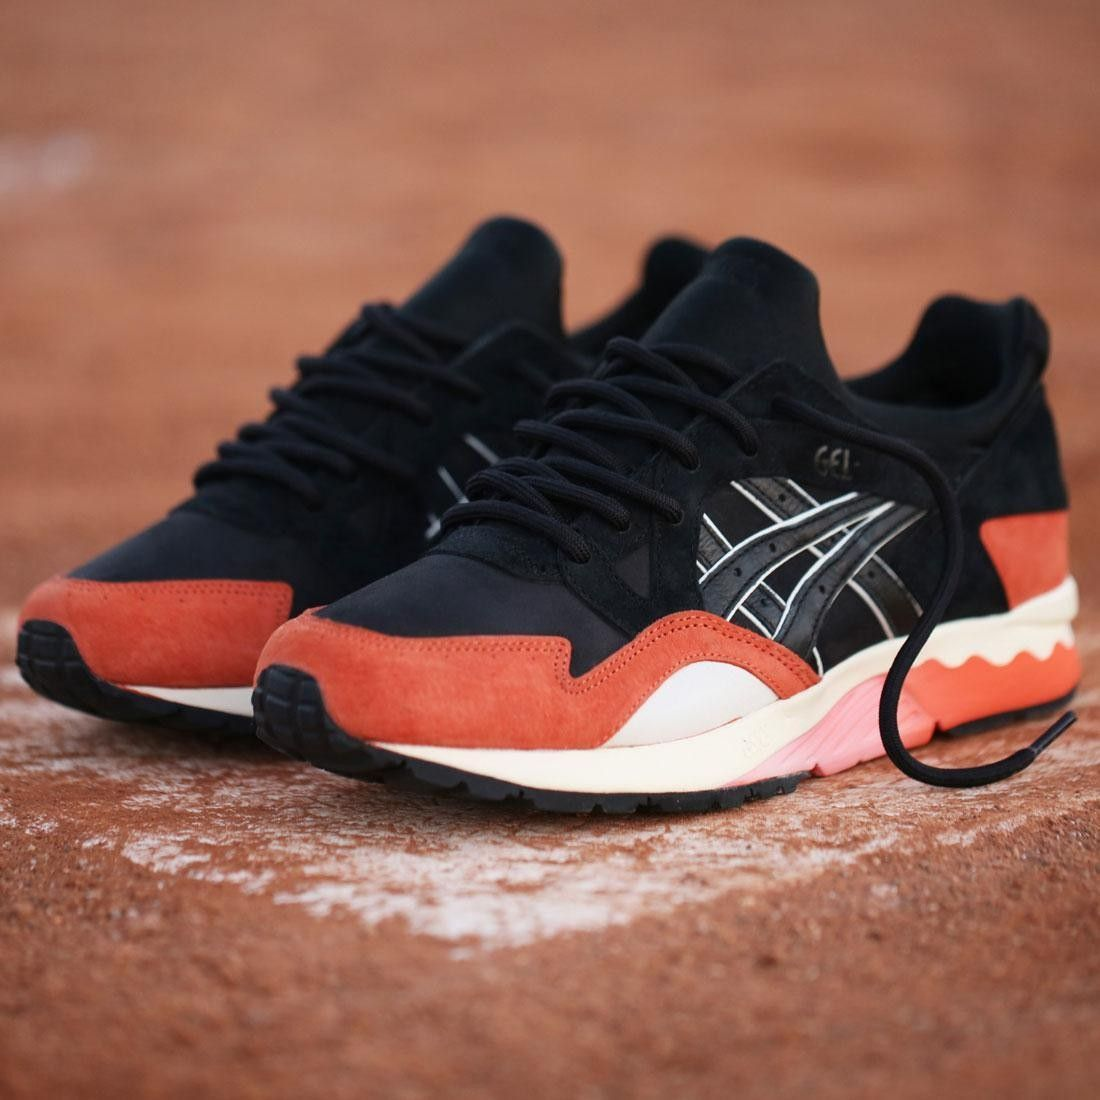 gel lyte v sale